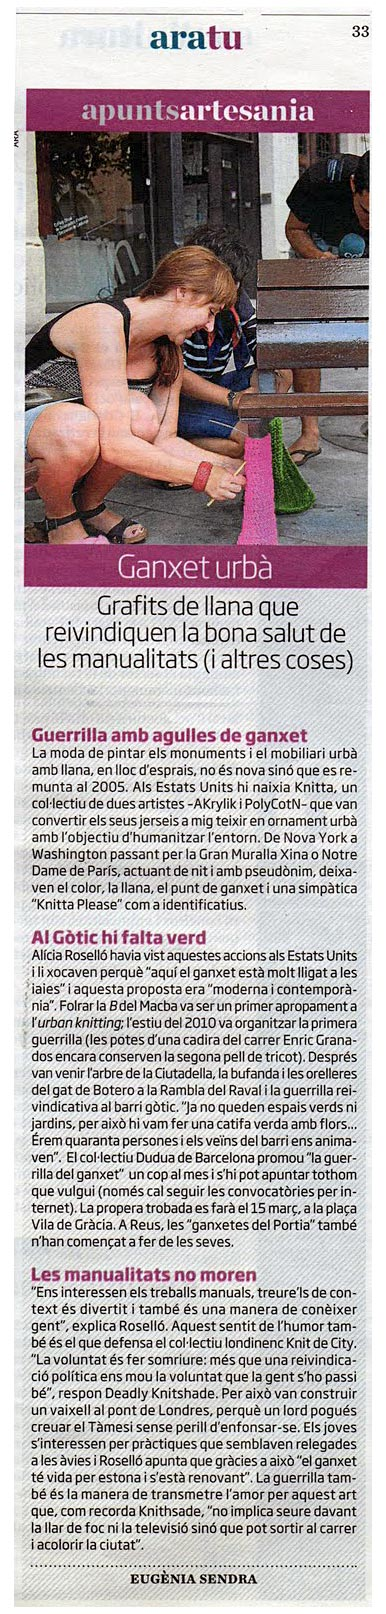 Article about the crochet guerrilla at the catalan newspaper Ara